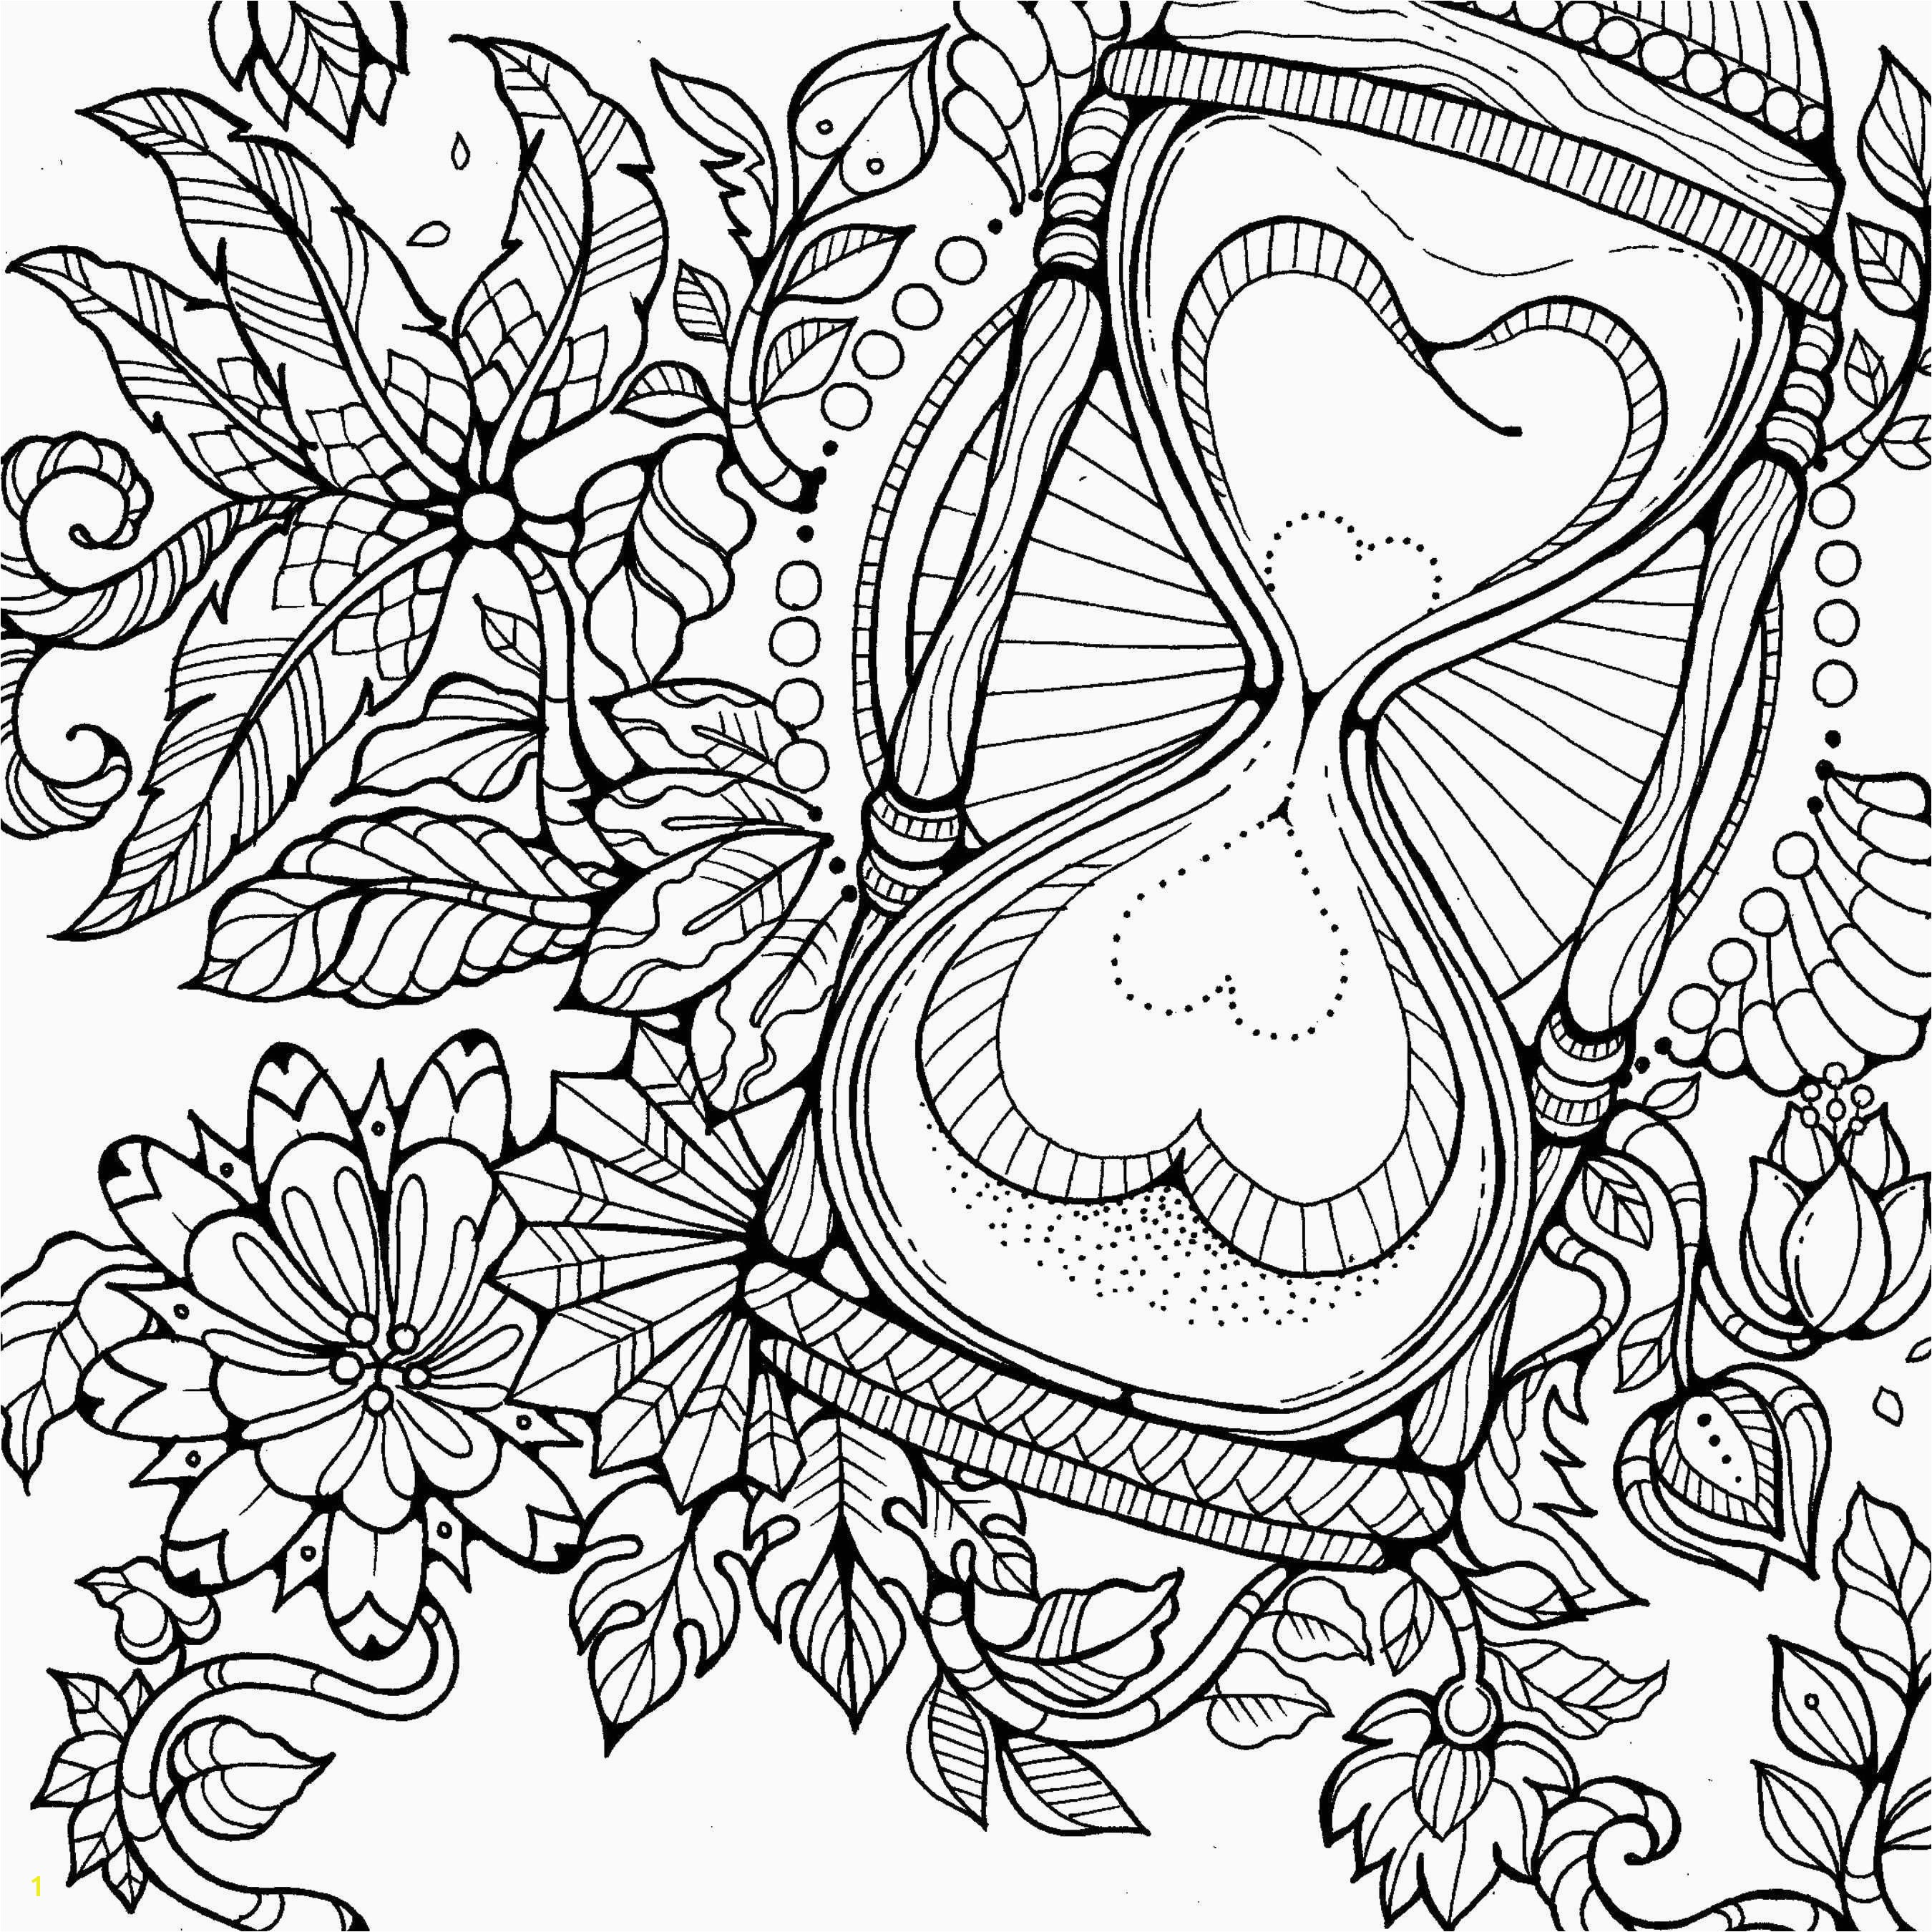 Coloring Pages Printable Inspirational Pages to Color New Color Page Luxury Multiplication Printables 0d